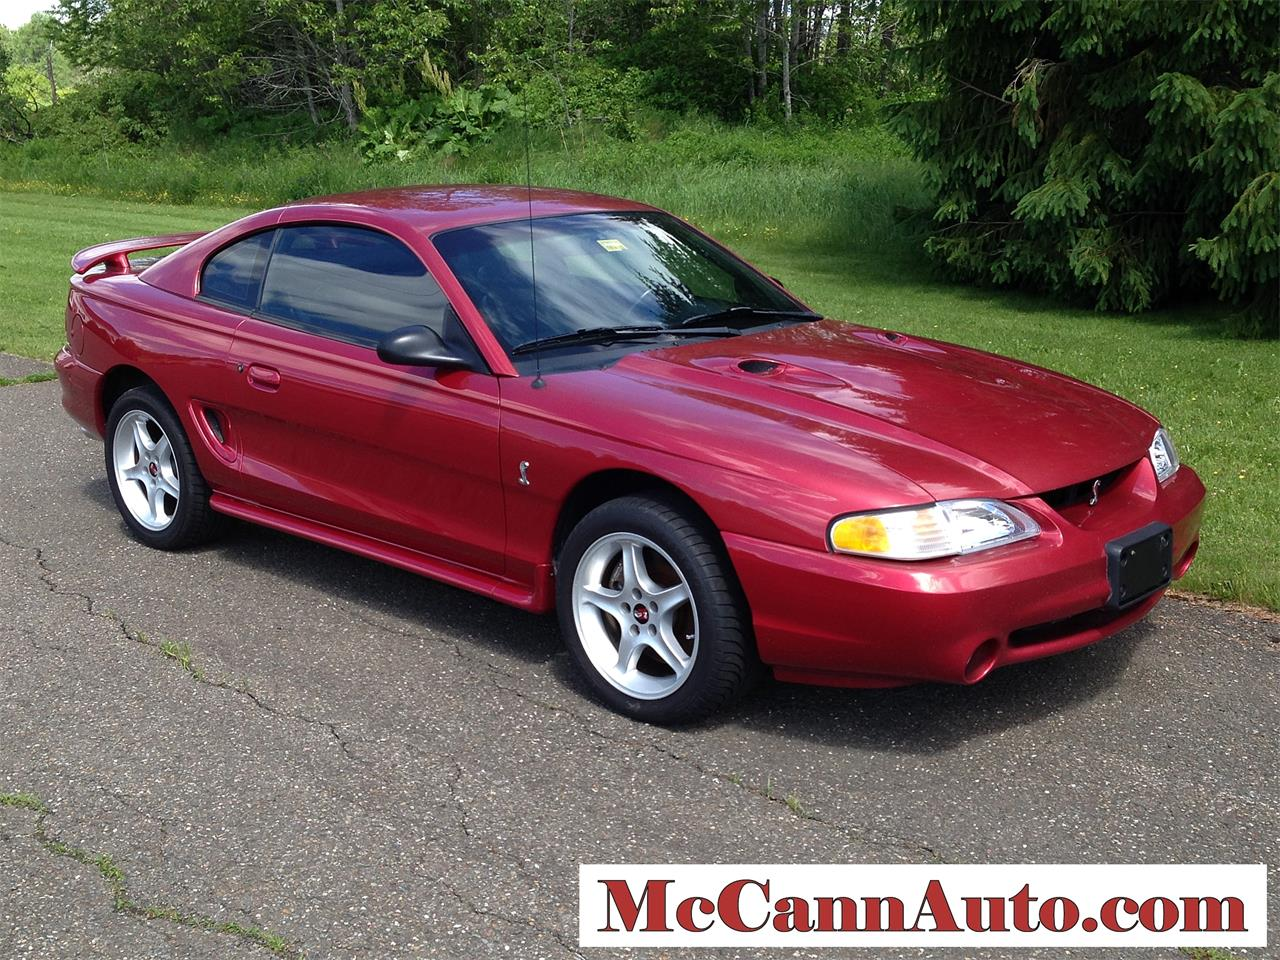 Large picture of 1998 ford mustang cobra 24995 00 j46n